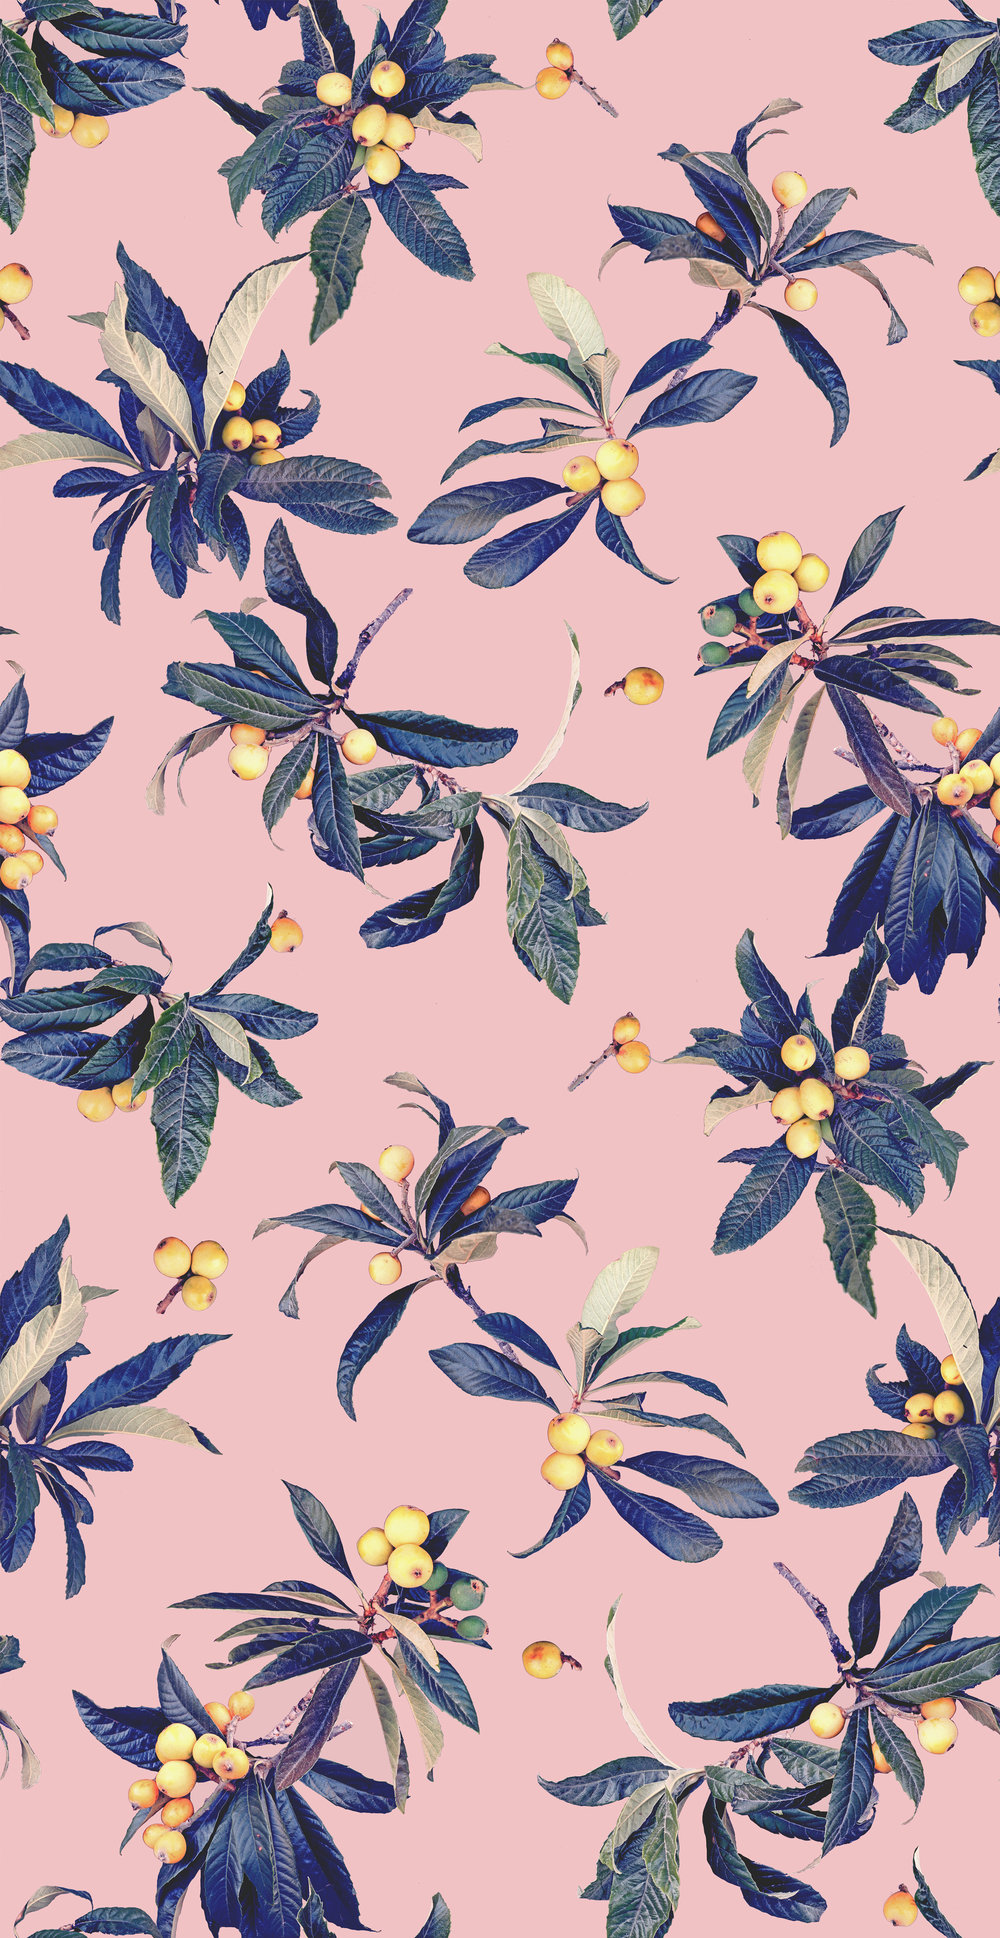 Loquat_Love_TILE_FINAL_pink_02_WEB.jpg